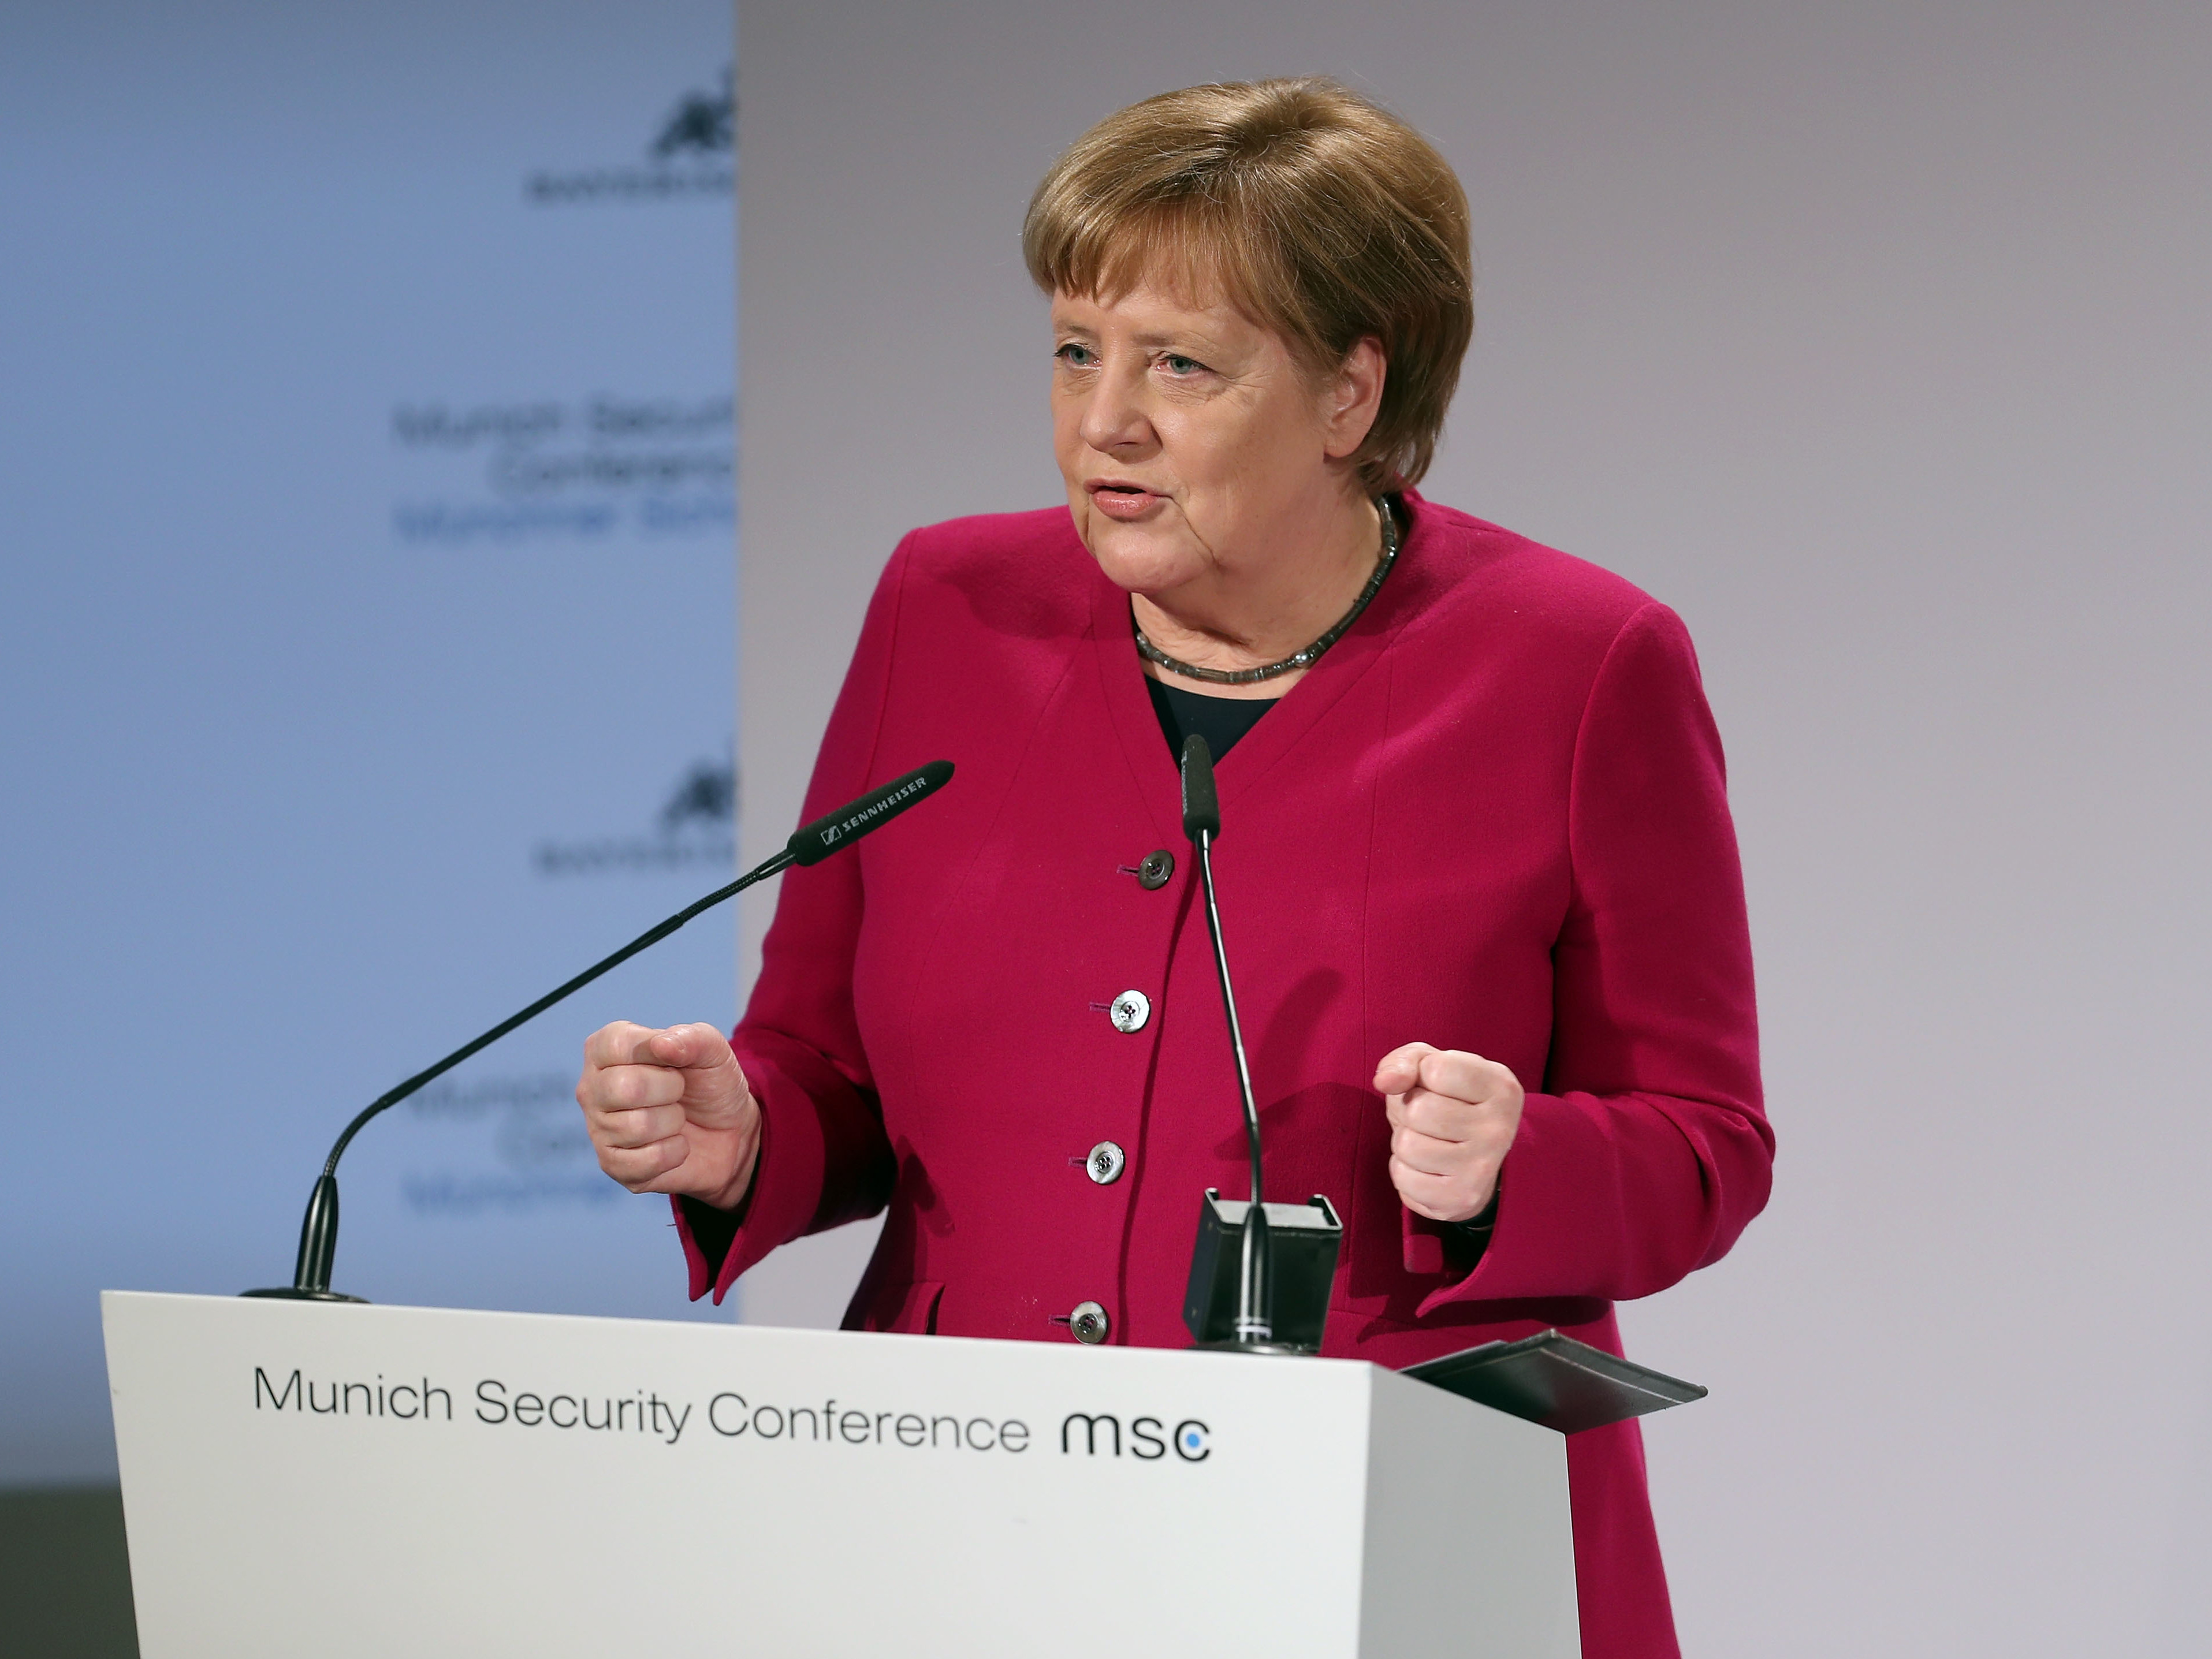 Munich Security Conference Reveals A Growing Rift Between U.S. And Its Allies